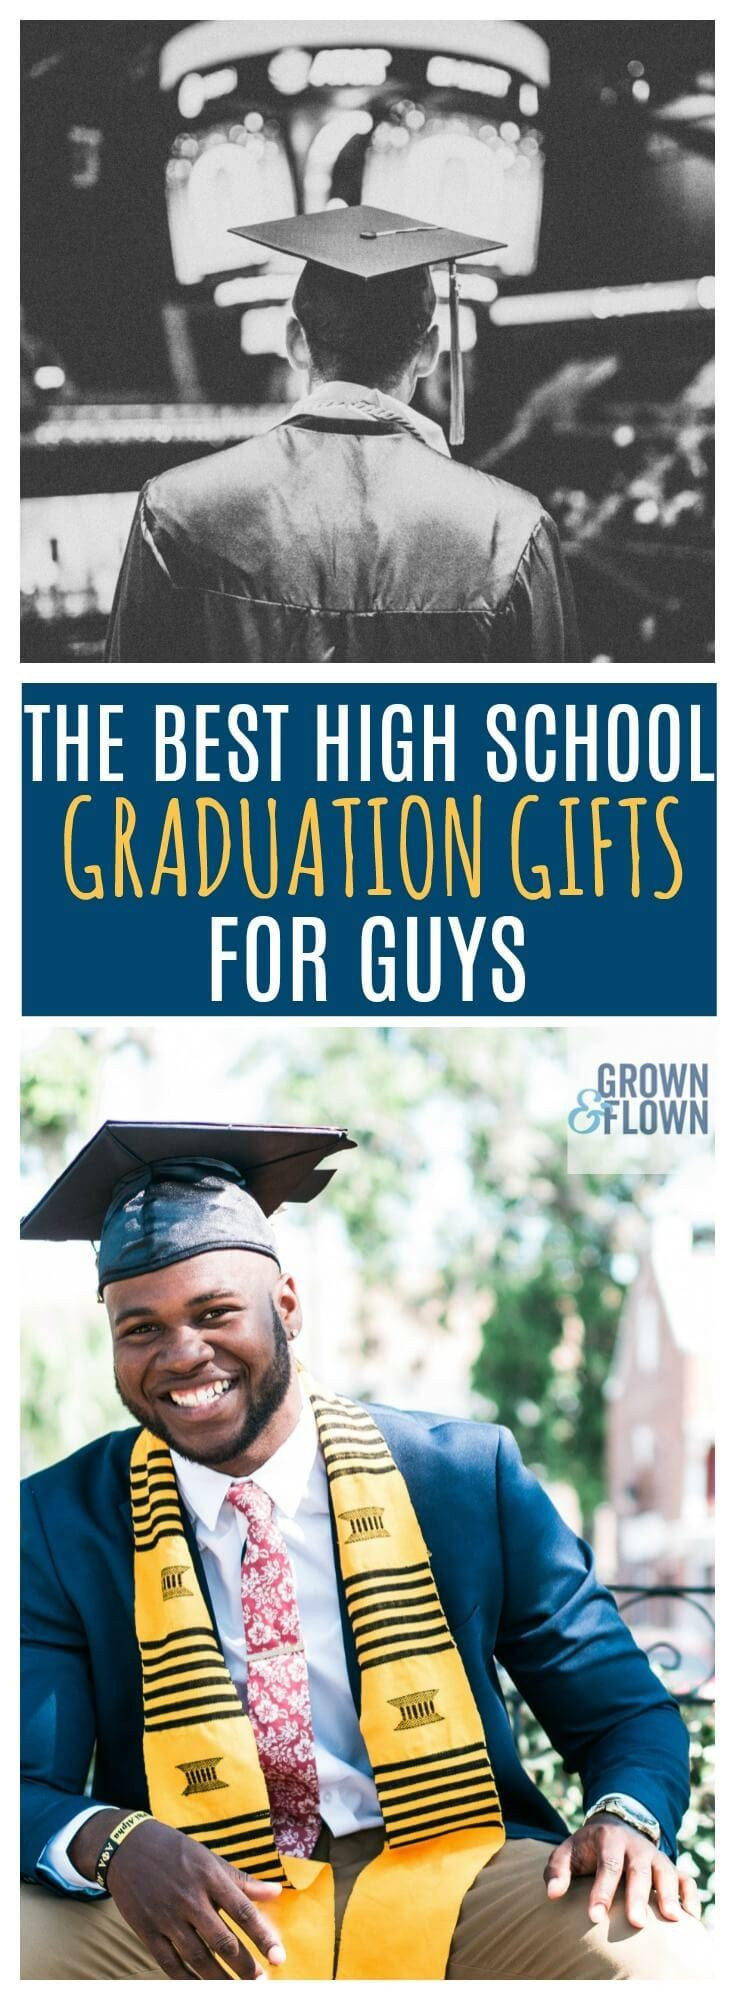 Phd Graduation Gift Ideas For Him  2020 High School Graduation Gifts for Guys They Will Love